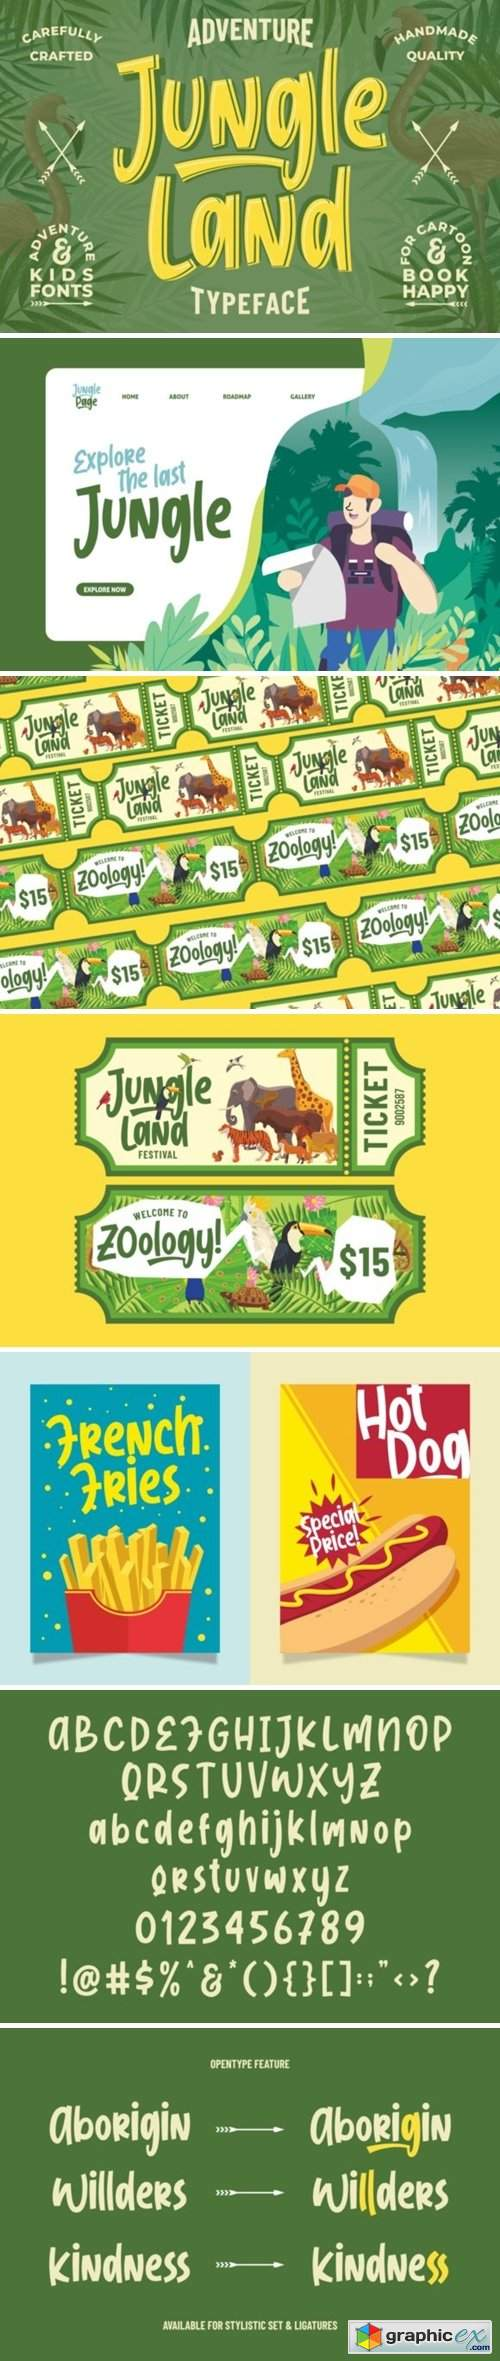 Jungle Land || Kidsventure Font